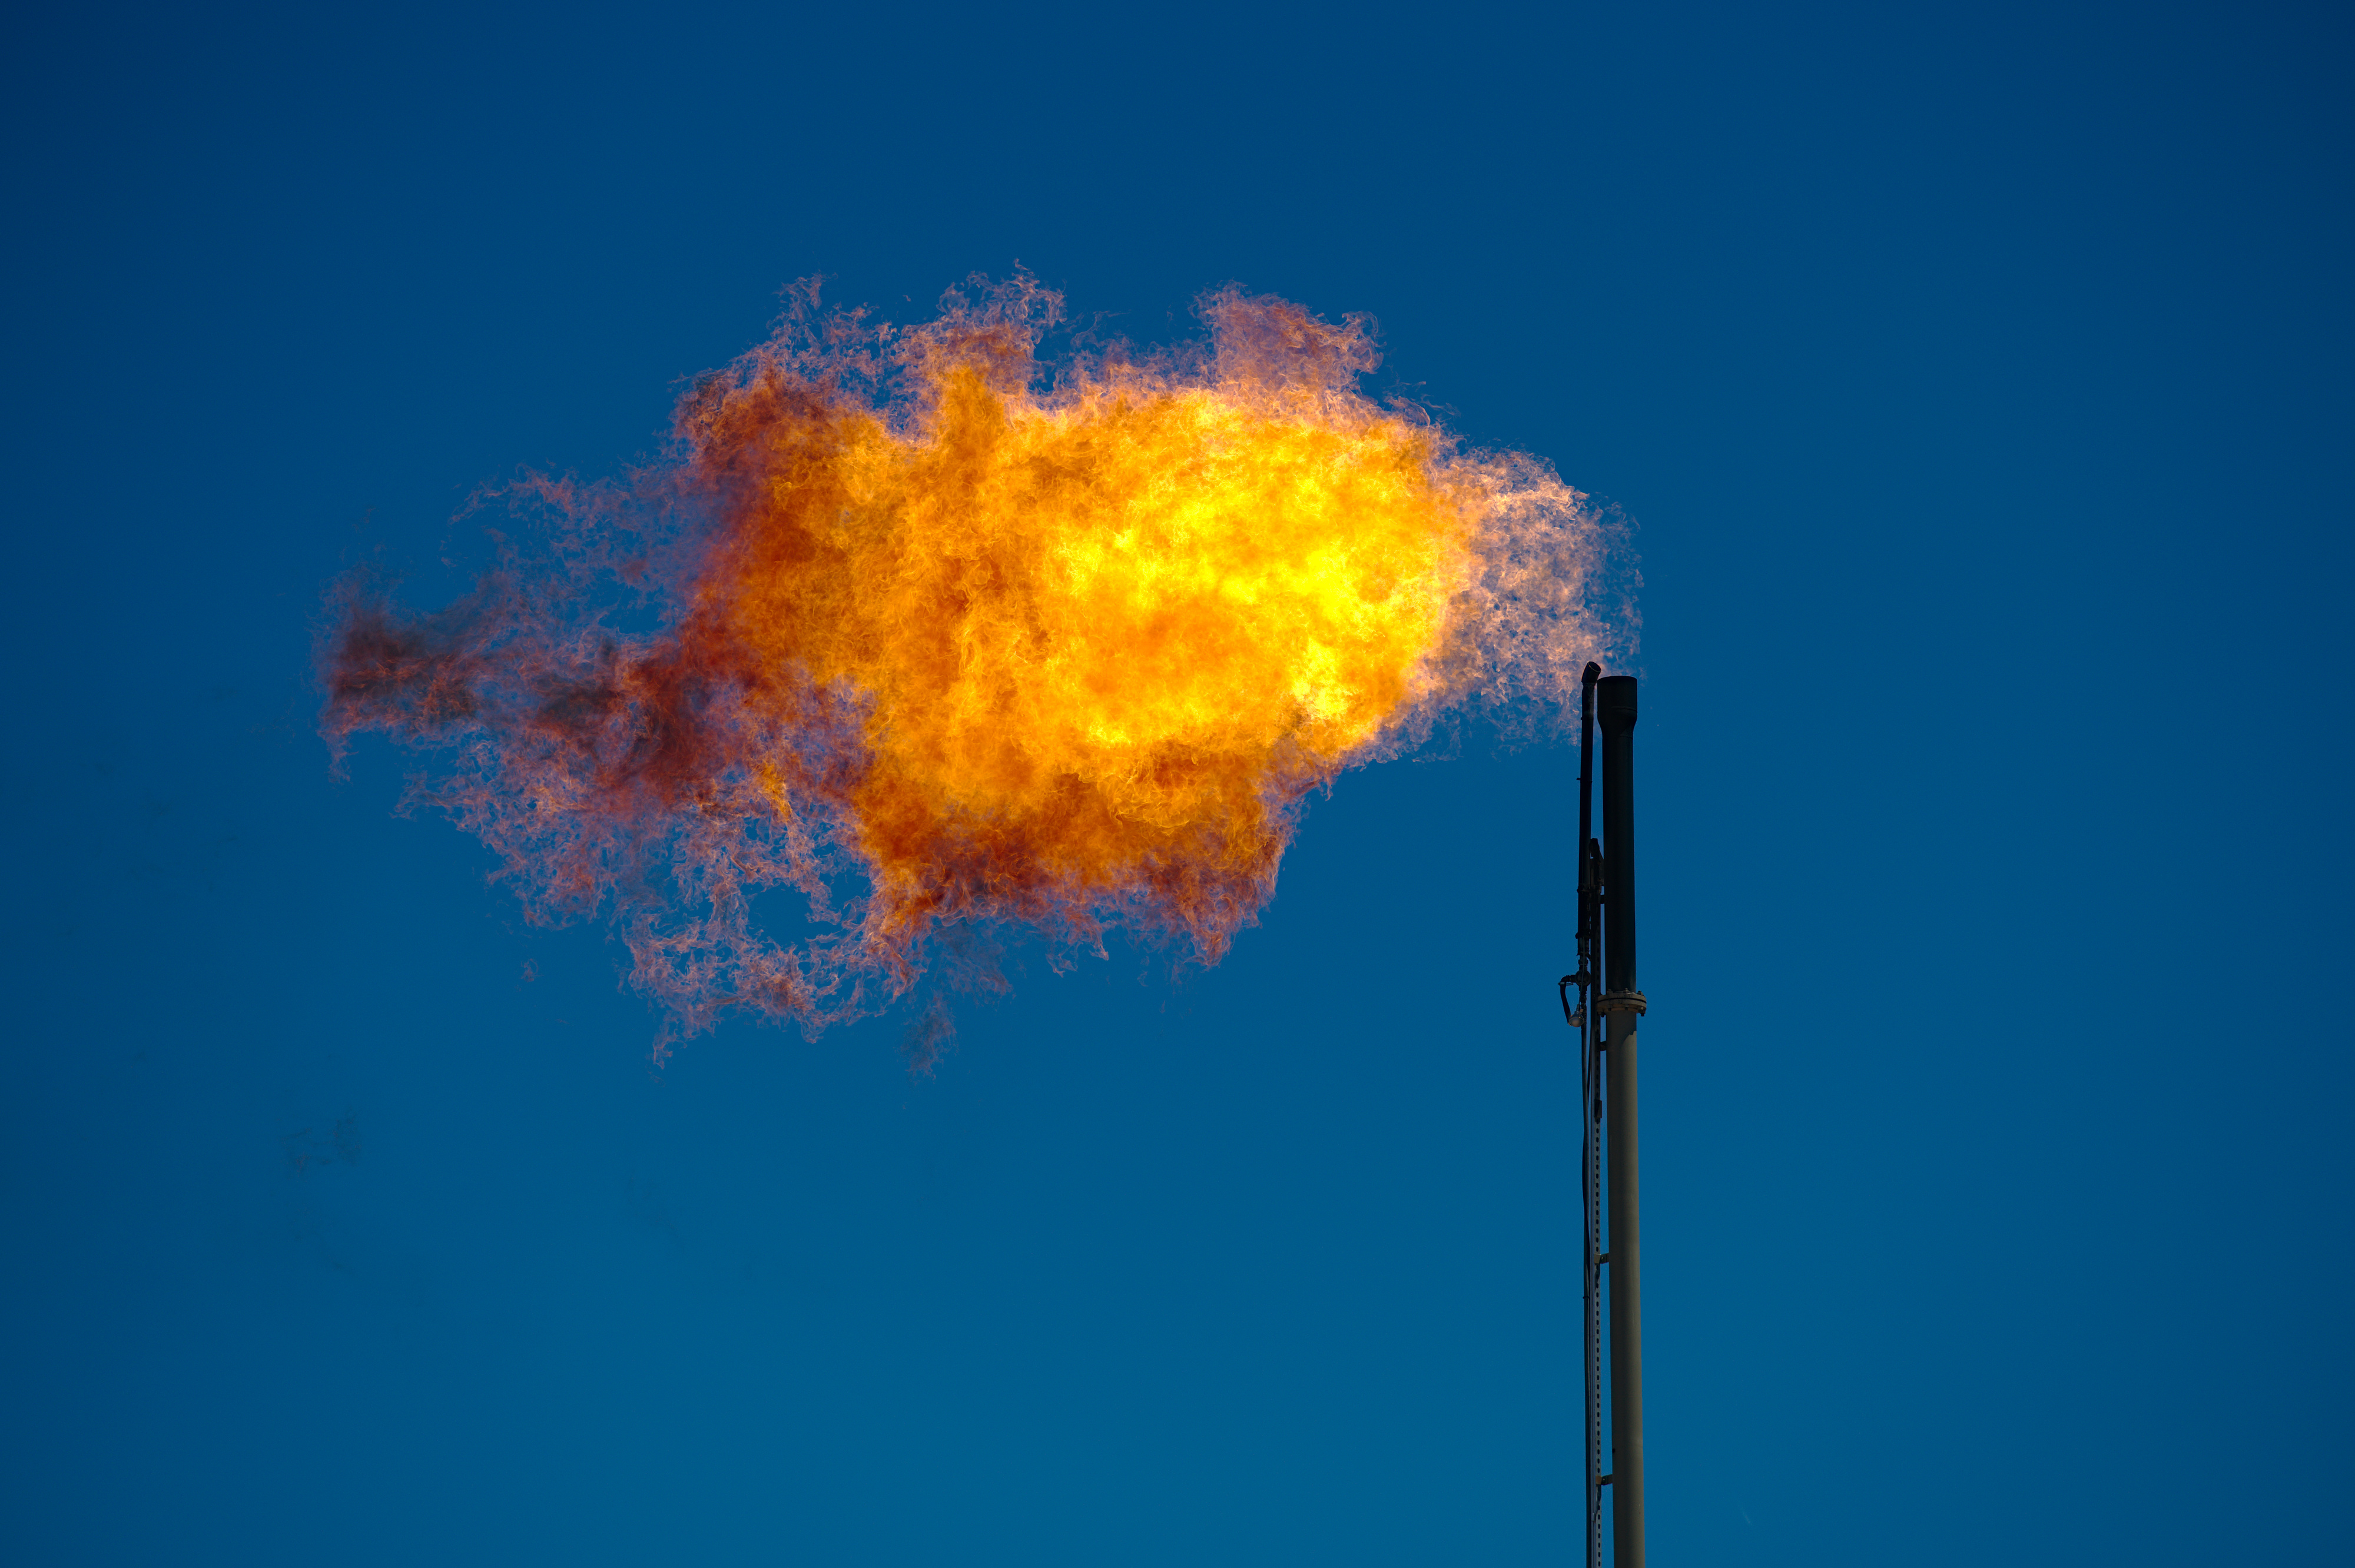 <h4>METHANE FLARES IN TEXAS</h4><h5>emitted over 13 million metric tons of global warming pollution in 2019 -- the carbon equivalent of 3.5 coal-powered power plants in a year.</h5><em>Shutterstock</em>